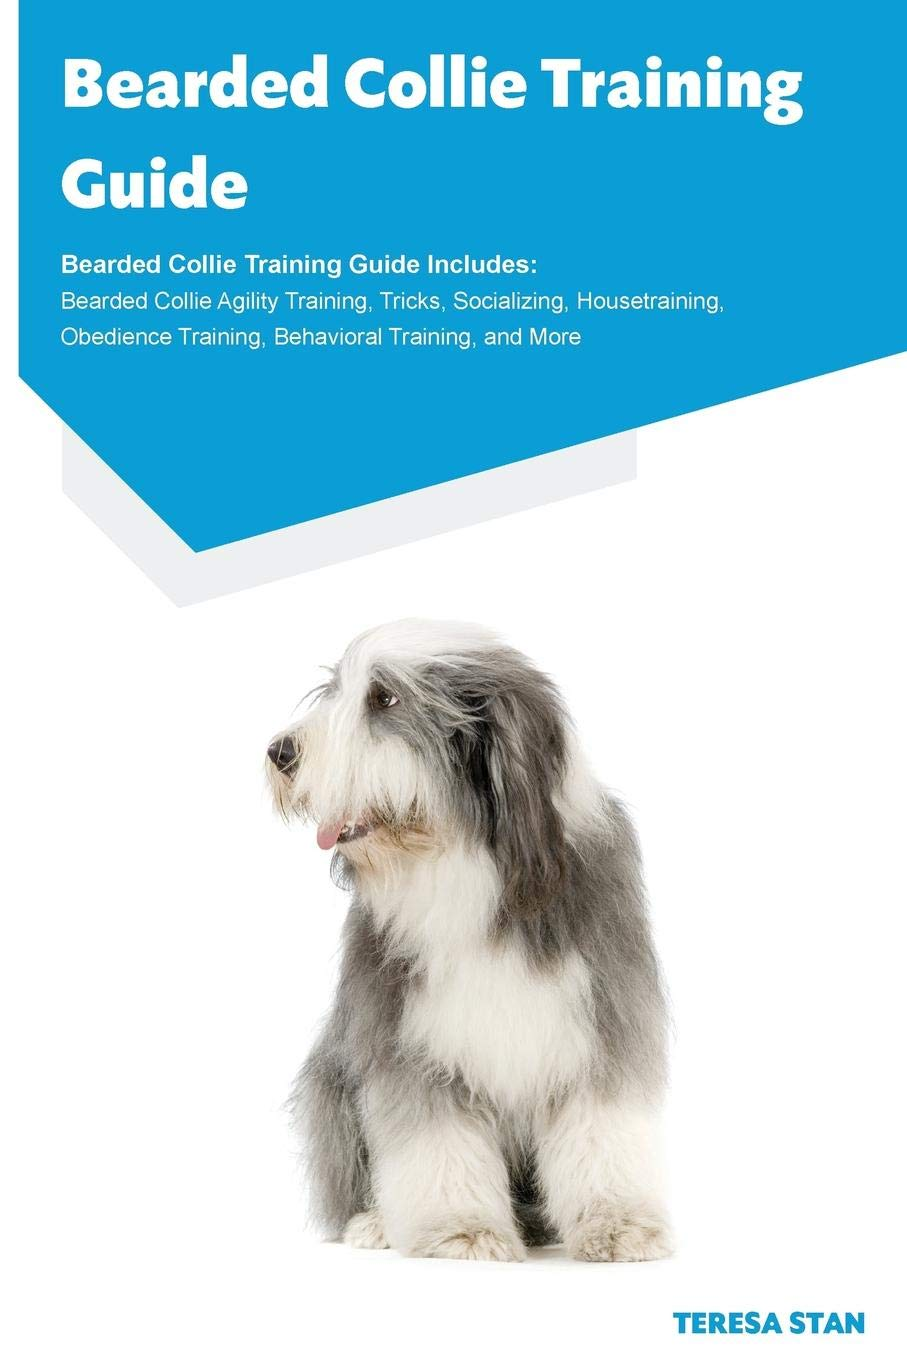 Bearded Collie Training Guide Bearded Collie Training Guide Includes: Bearded Collie Agility Training, Tricks…